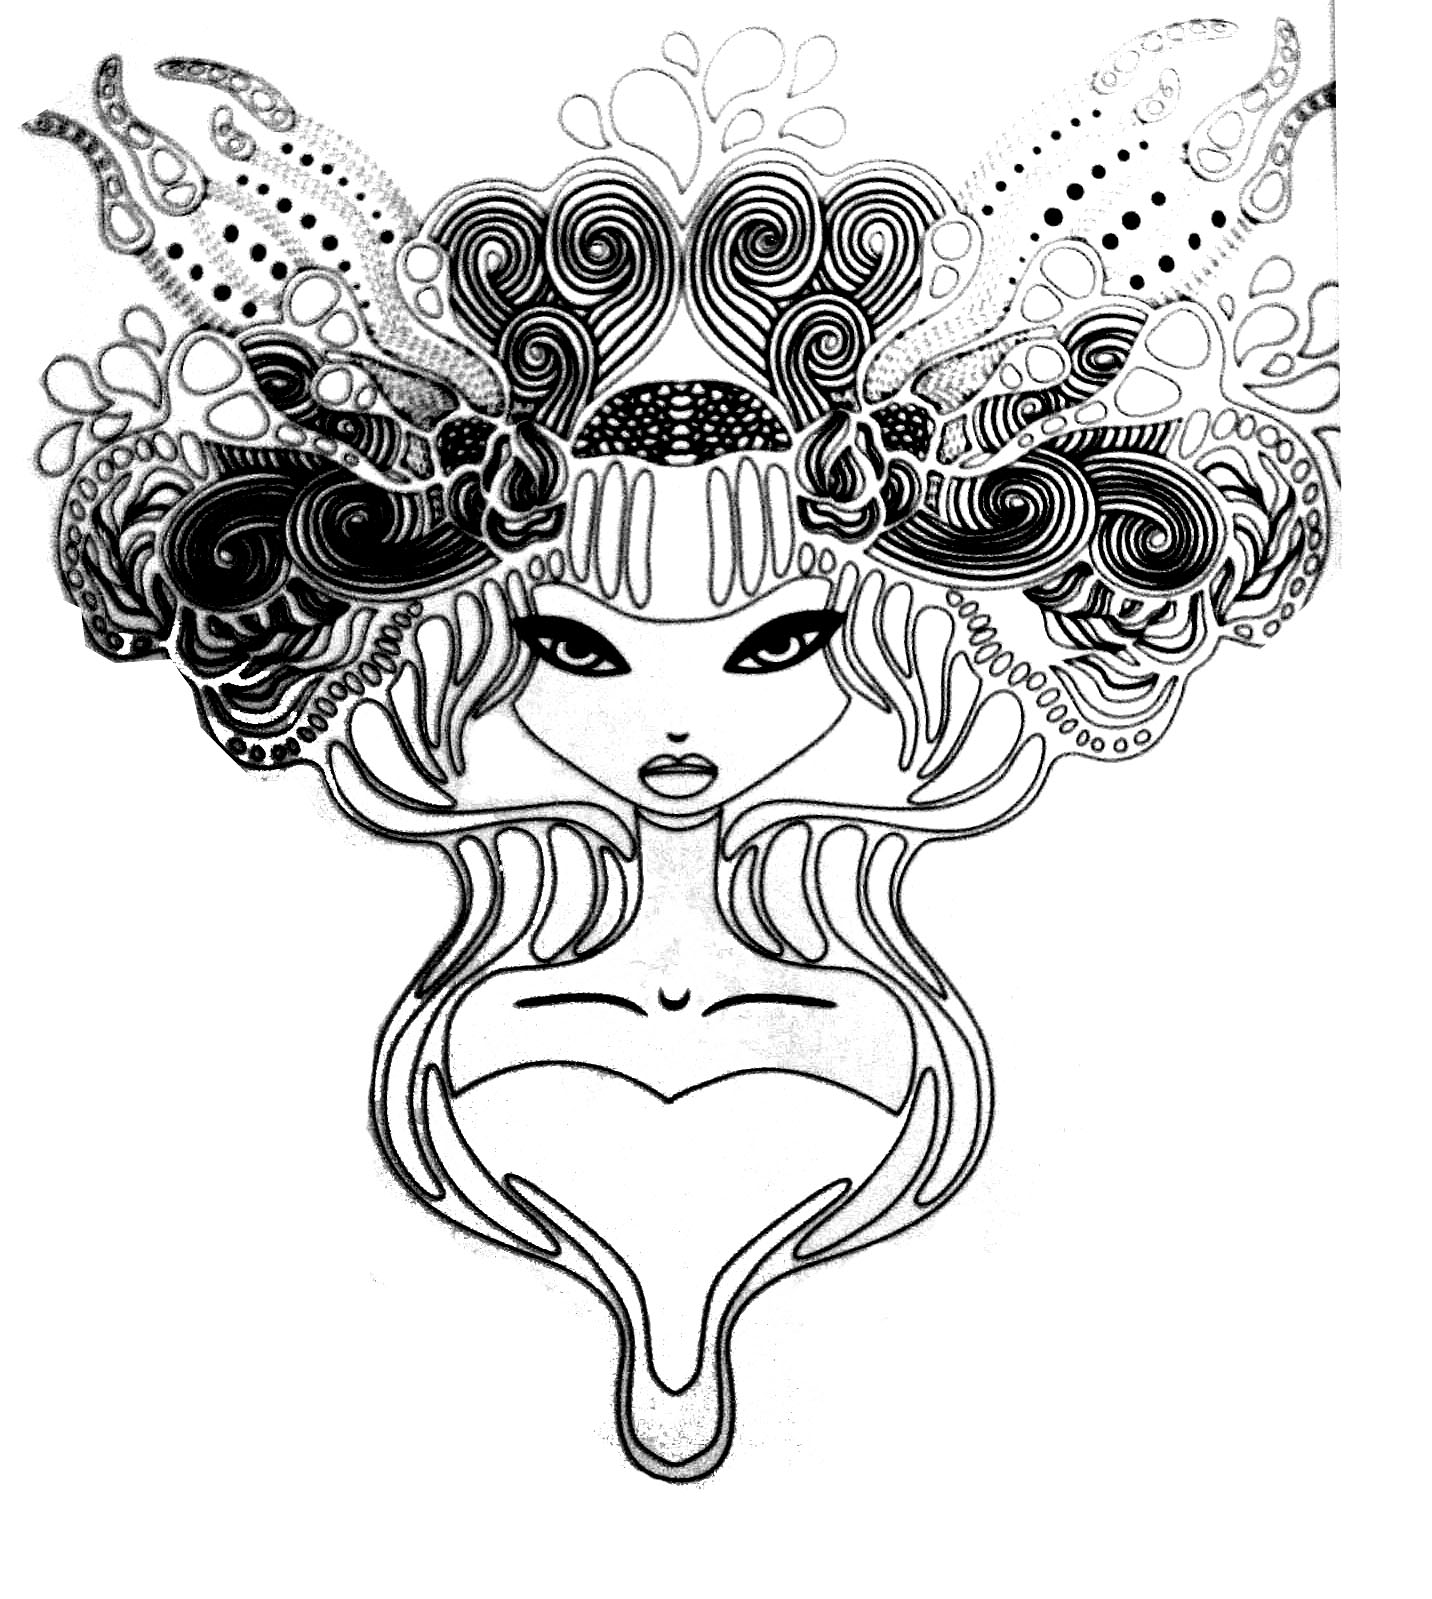 Tattoo princess - Tattoos Adult Coloring Pages - Page 2